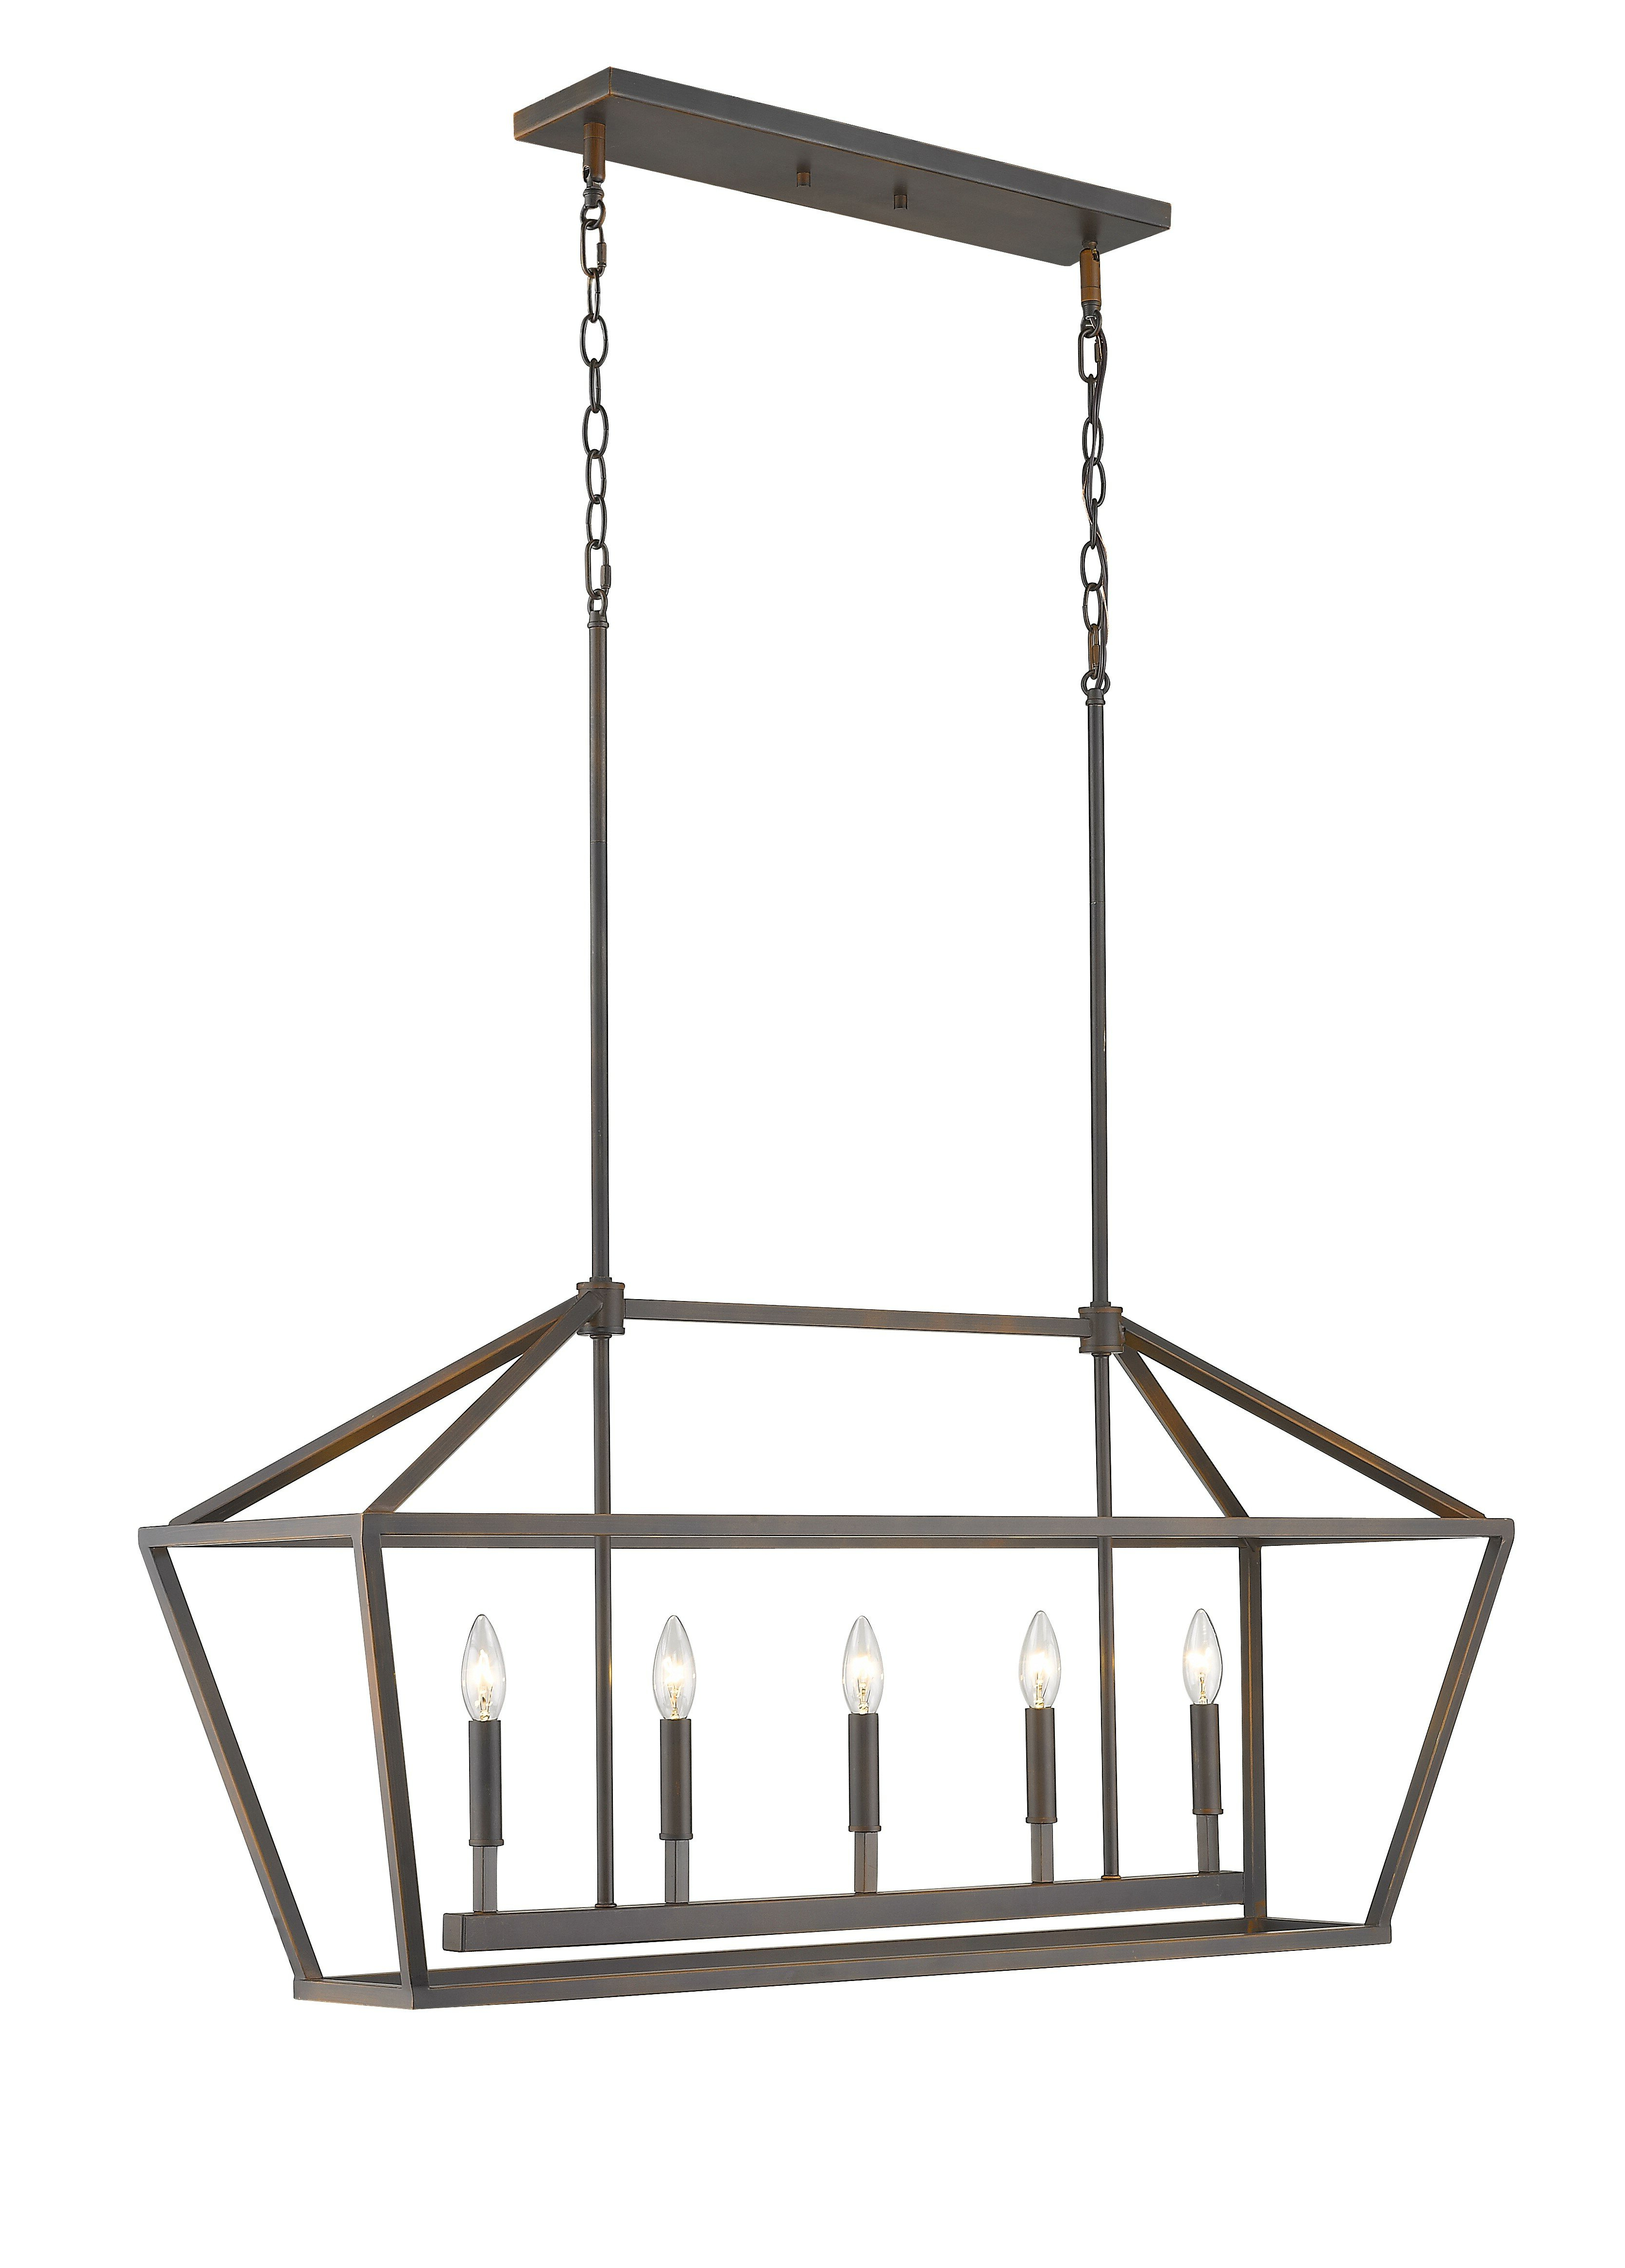 2020 Odie 8 Light Kitchen Island Square / Rectangle Pendants With Freemont 5 Light Kitchen Island Linear Chandelier (View 14 of 25)